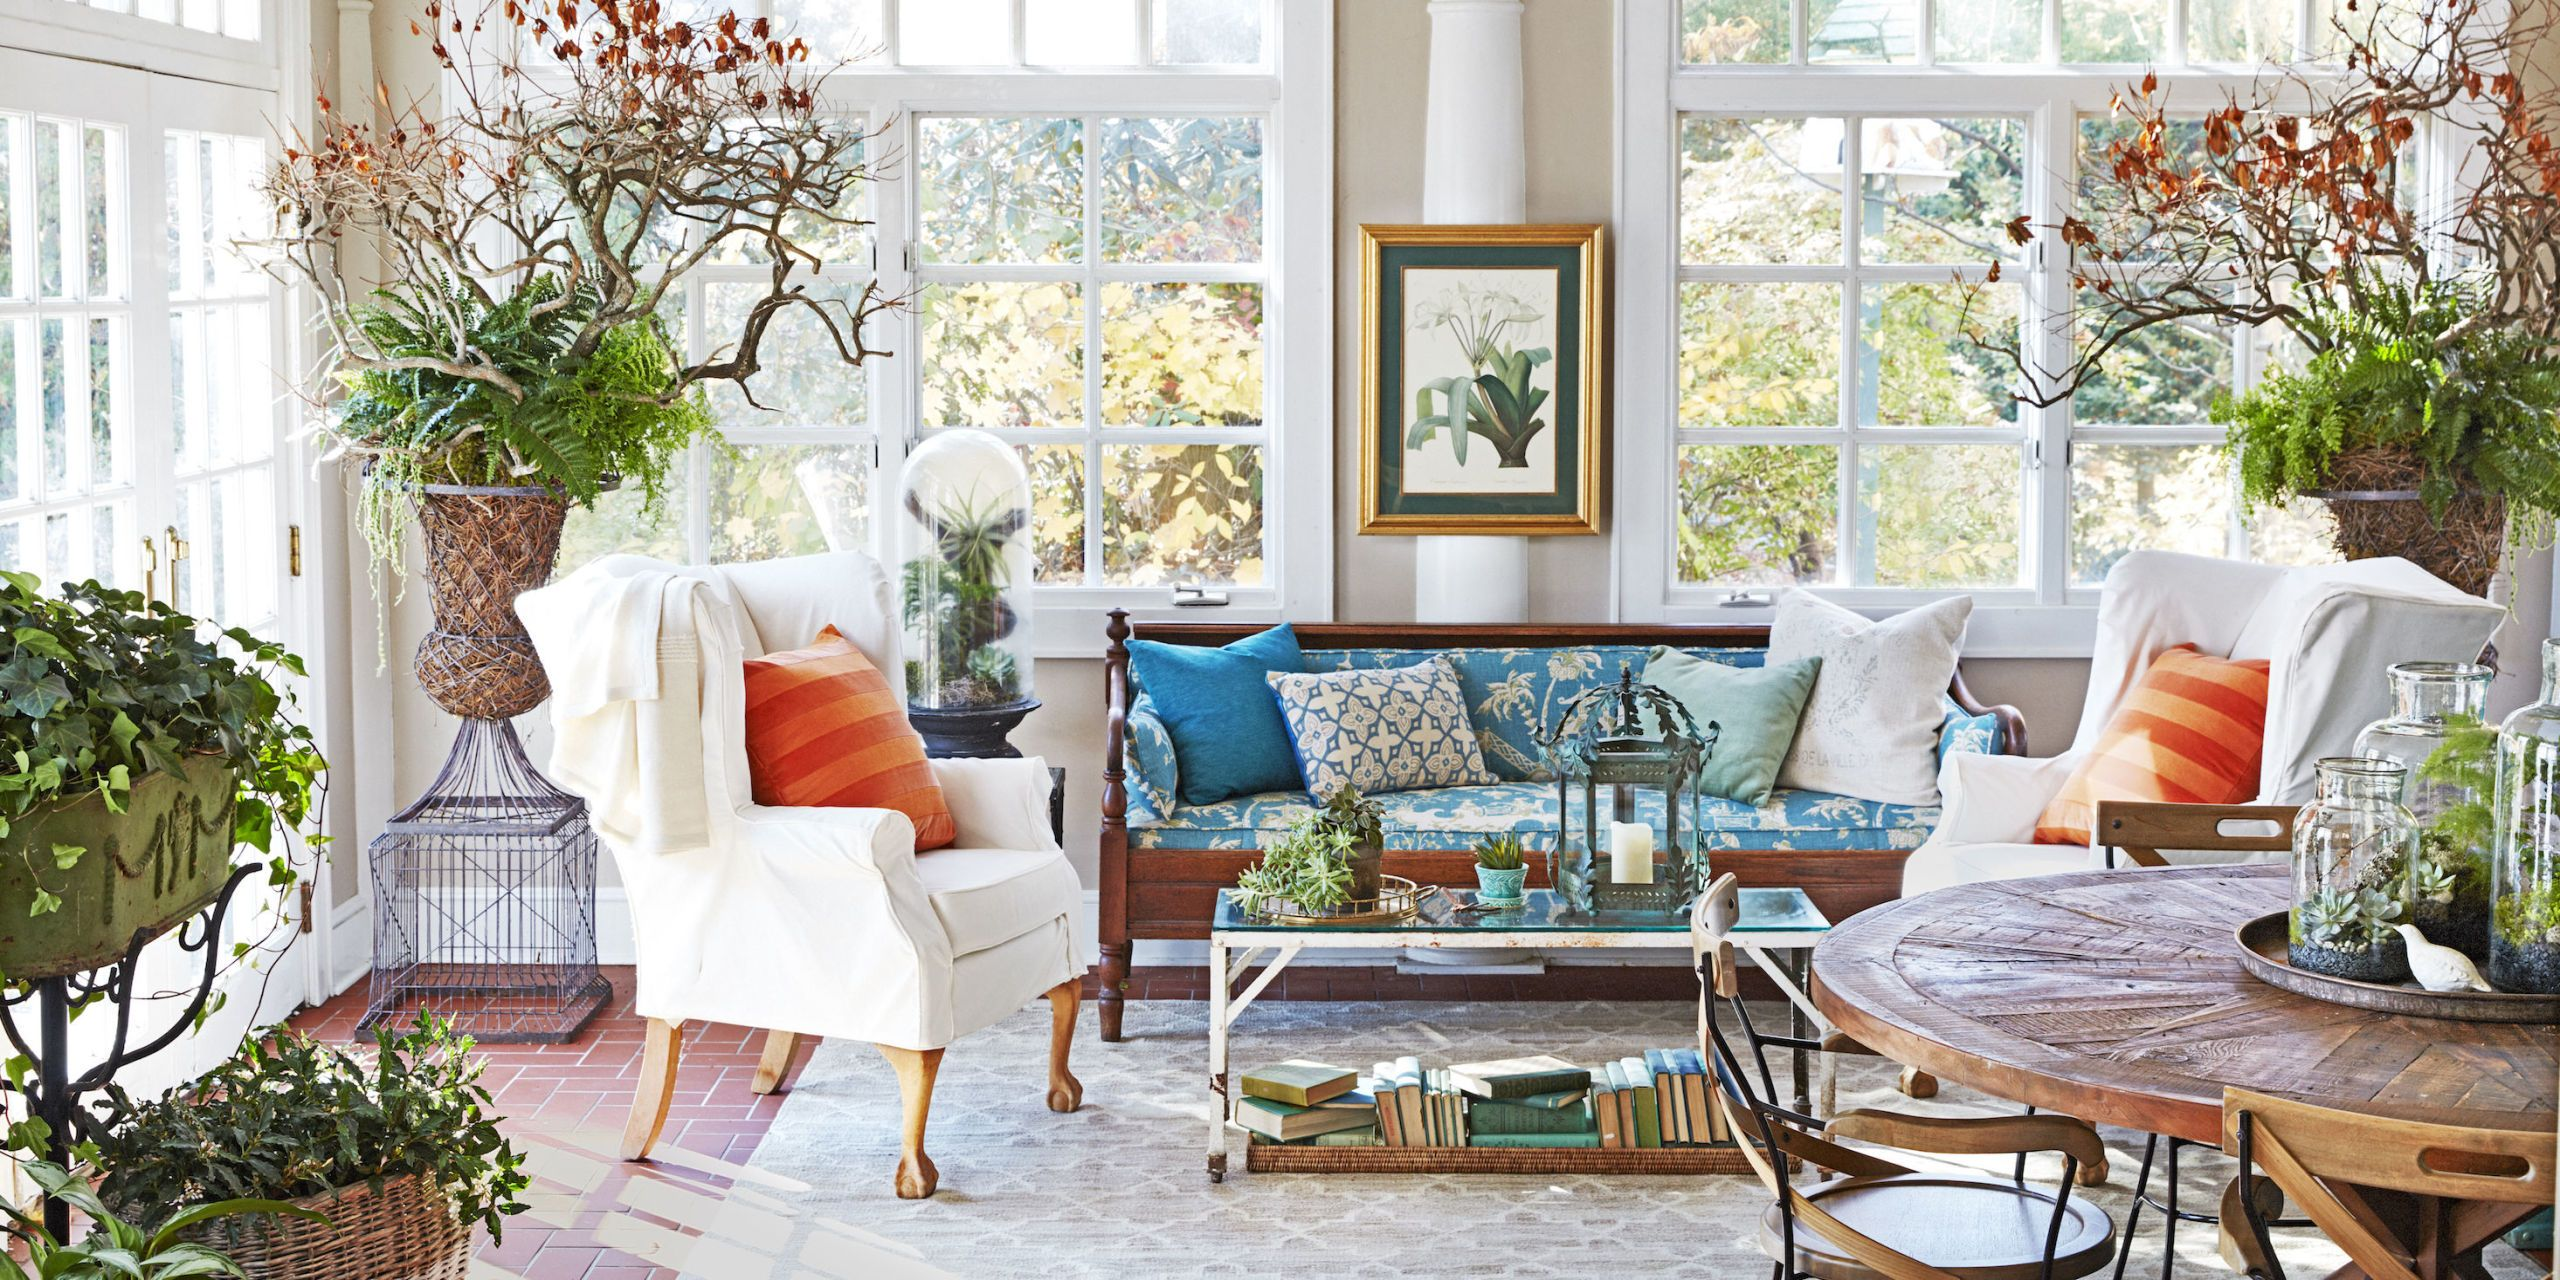 Delightful Deborah Herbertson Connecticut Cottage Sunroom. 10 Sunroom Decorating Ideas